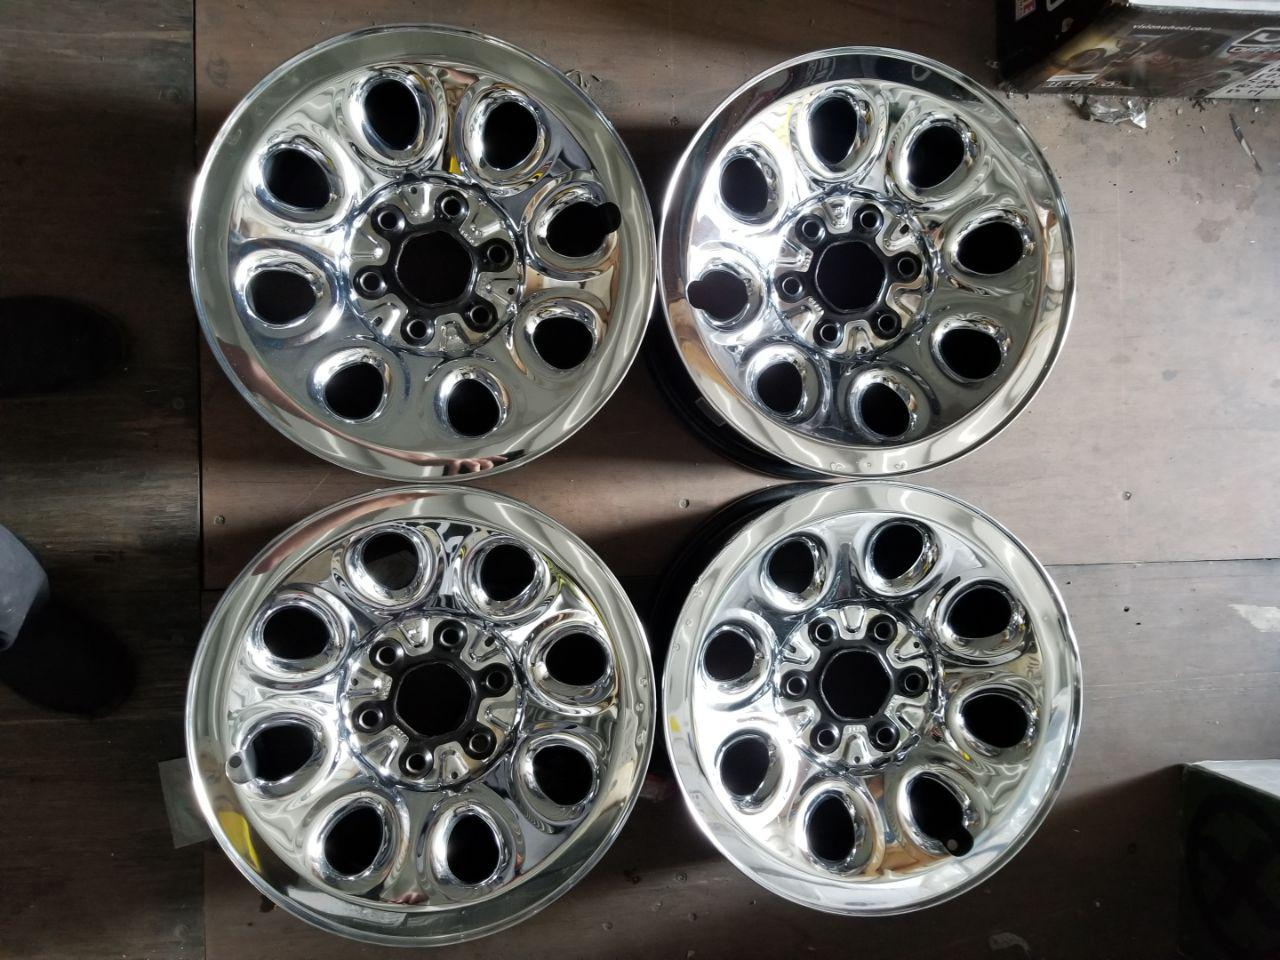 - OEM WHEELS - 2007-2014 GM SIERRA/SILVERADO/SUBURBAN/TAHOE 17X7.5 8 SPOKE Hollander #5223 /  USED